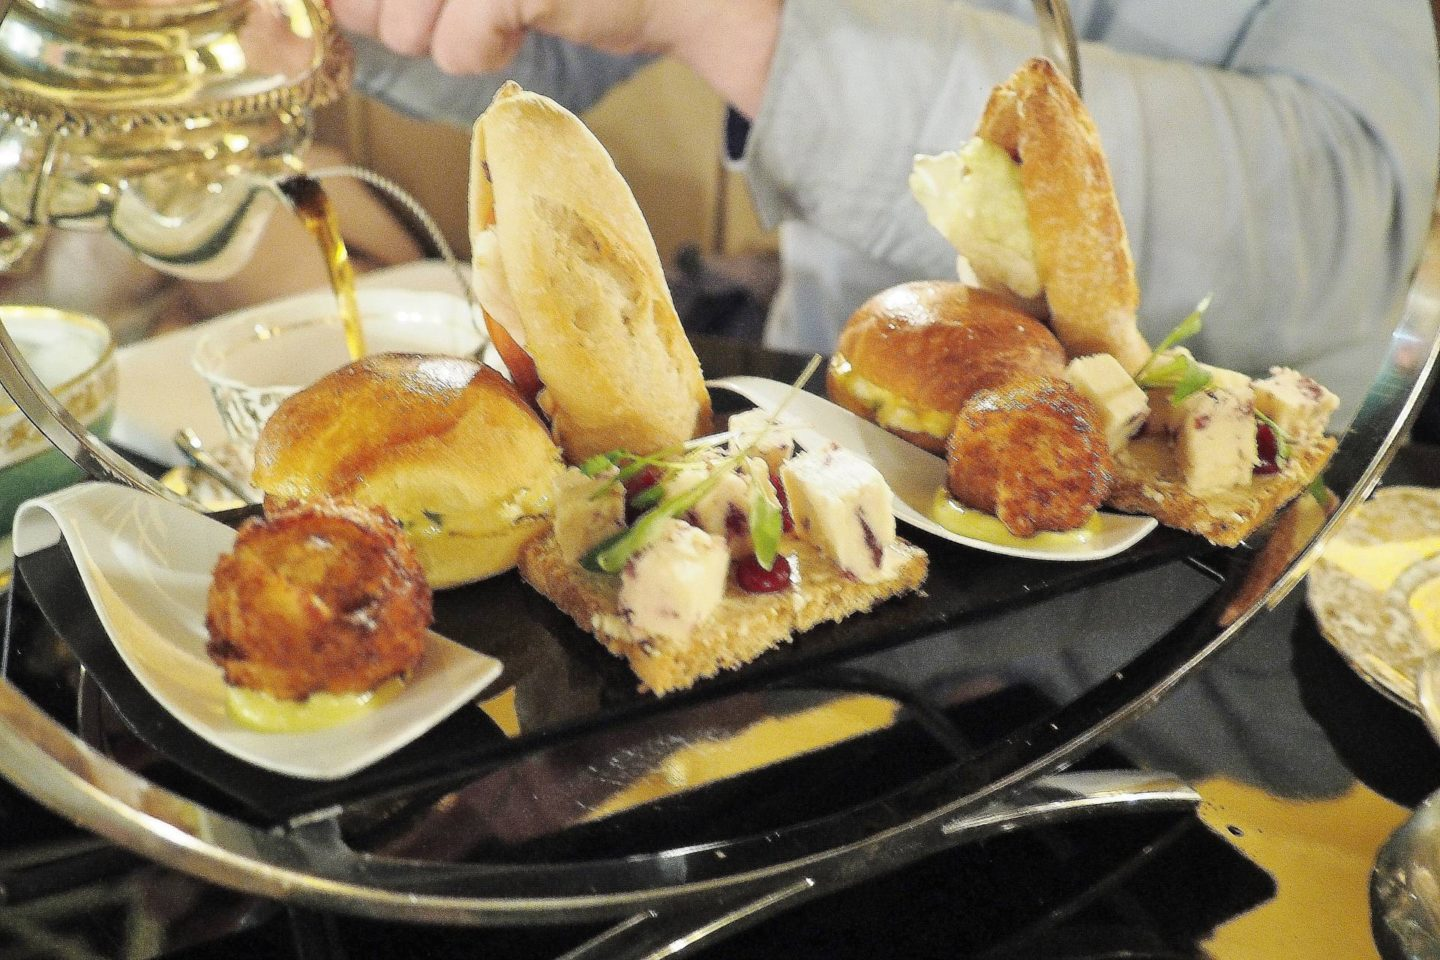 Emma Victoria Stokes Afternoon Tea Edgbaston Boutique Hotel Wensleydale with curry sauce on crostini bread - a haddock fish cake cemented with wasabi mayonnaise, served on a Japanese spoon - crispy bacon fresh tomato lettuce baguette and egg mayo brioche